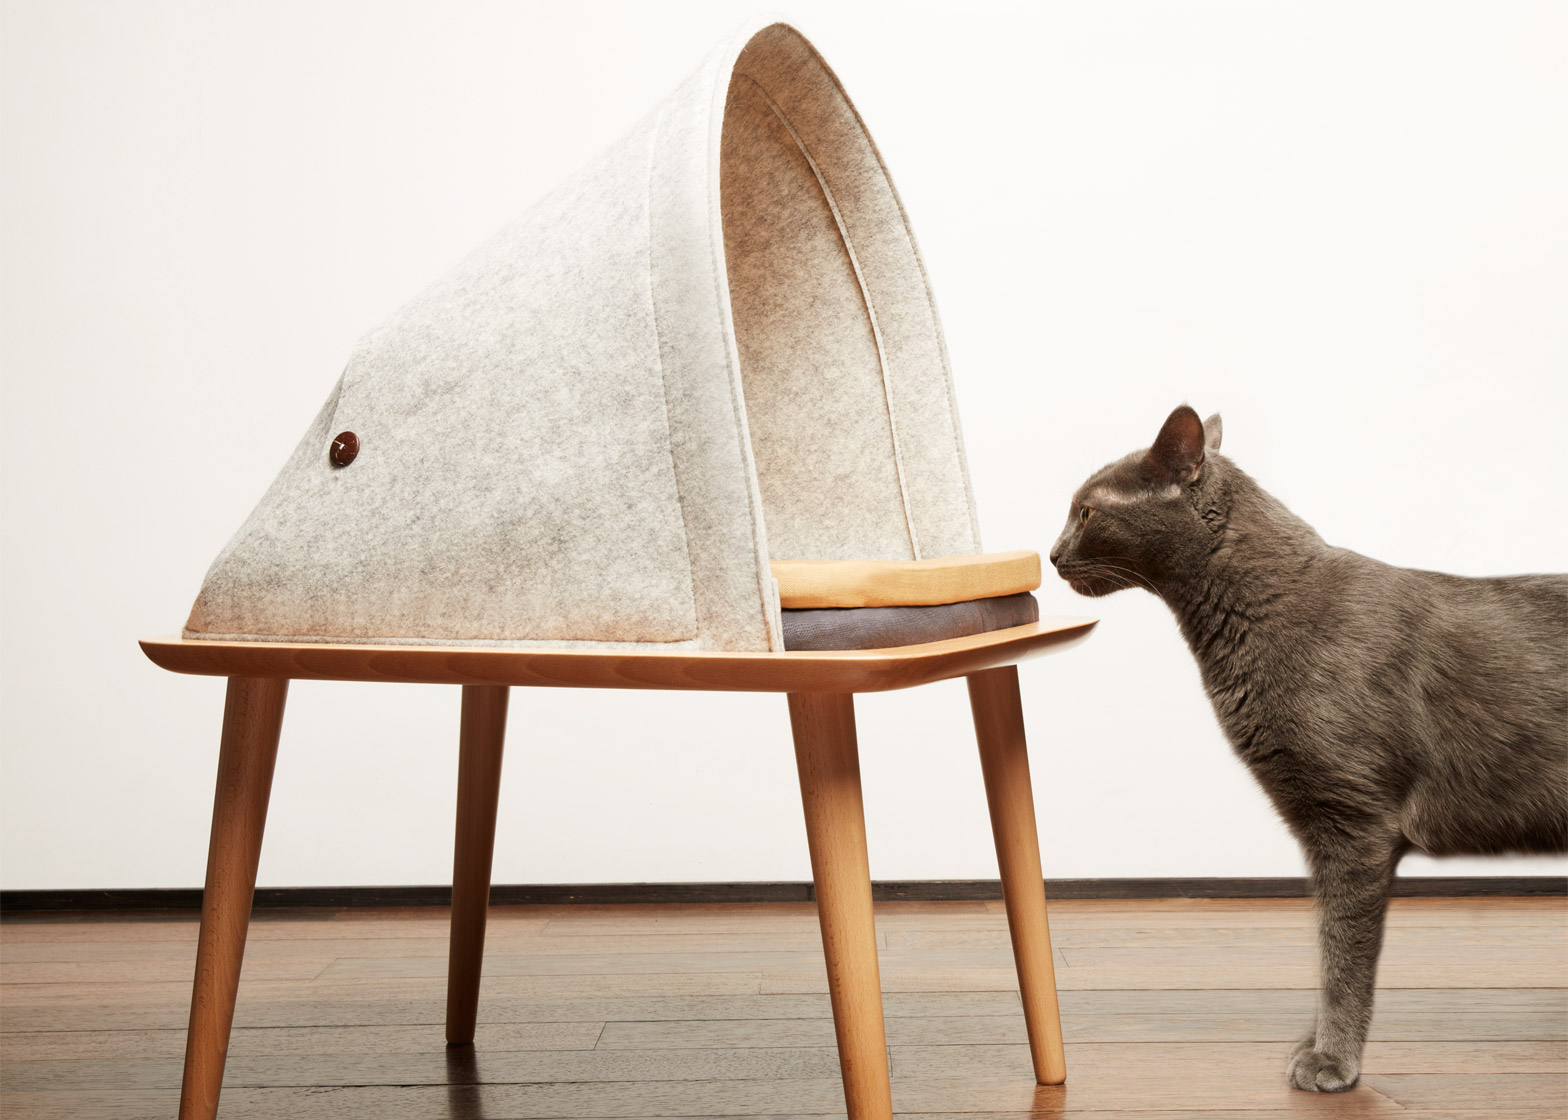 Furniture for cats by Meyou